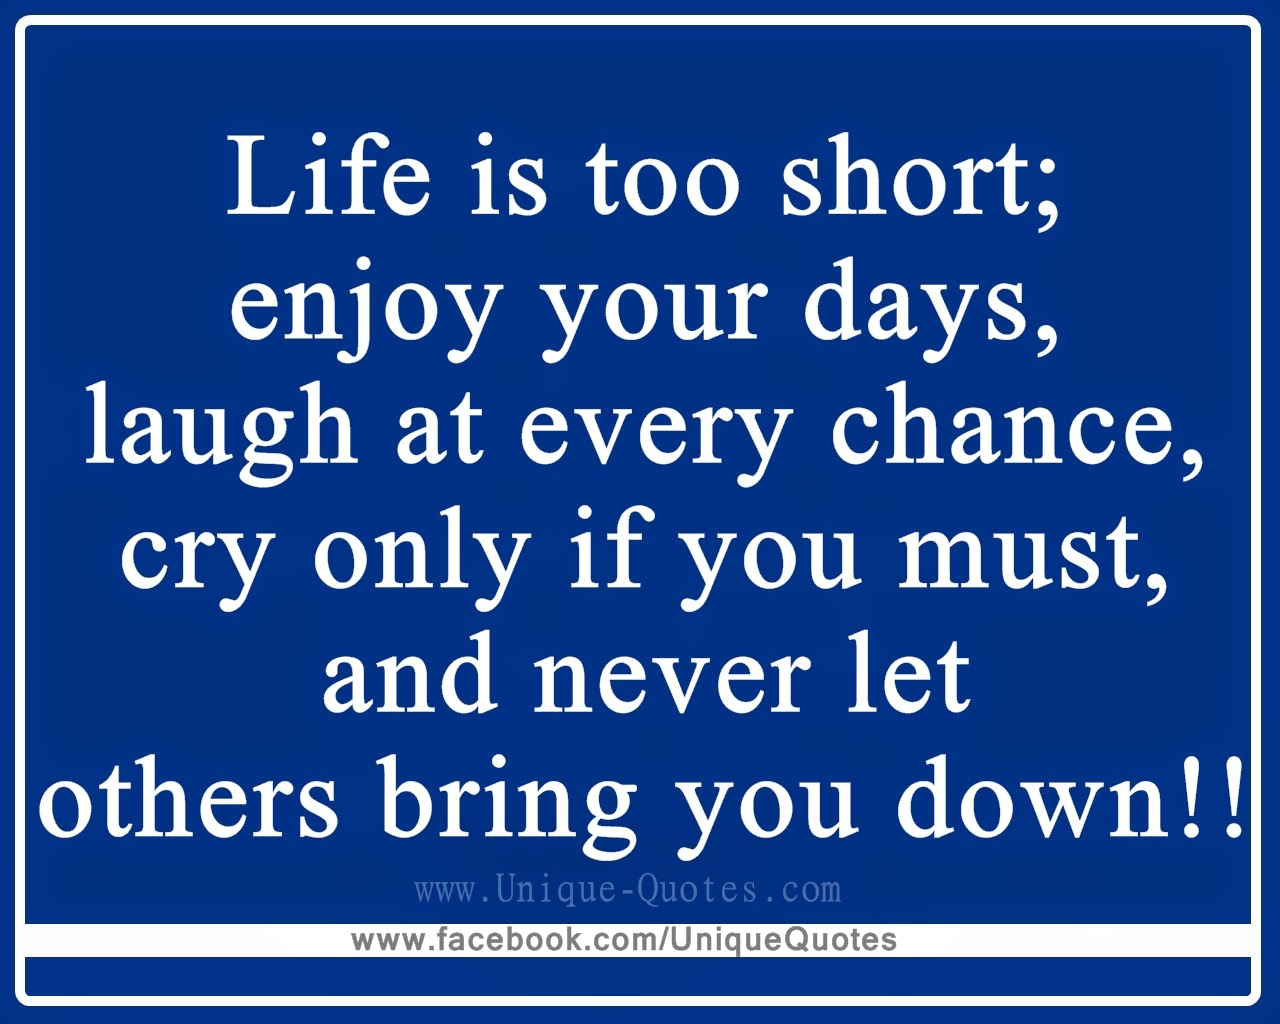 Life Is Too Short Enjoy Your Days Laugh At Every Chance Cry Only